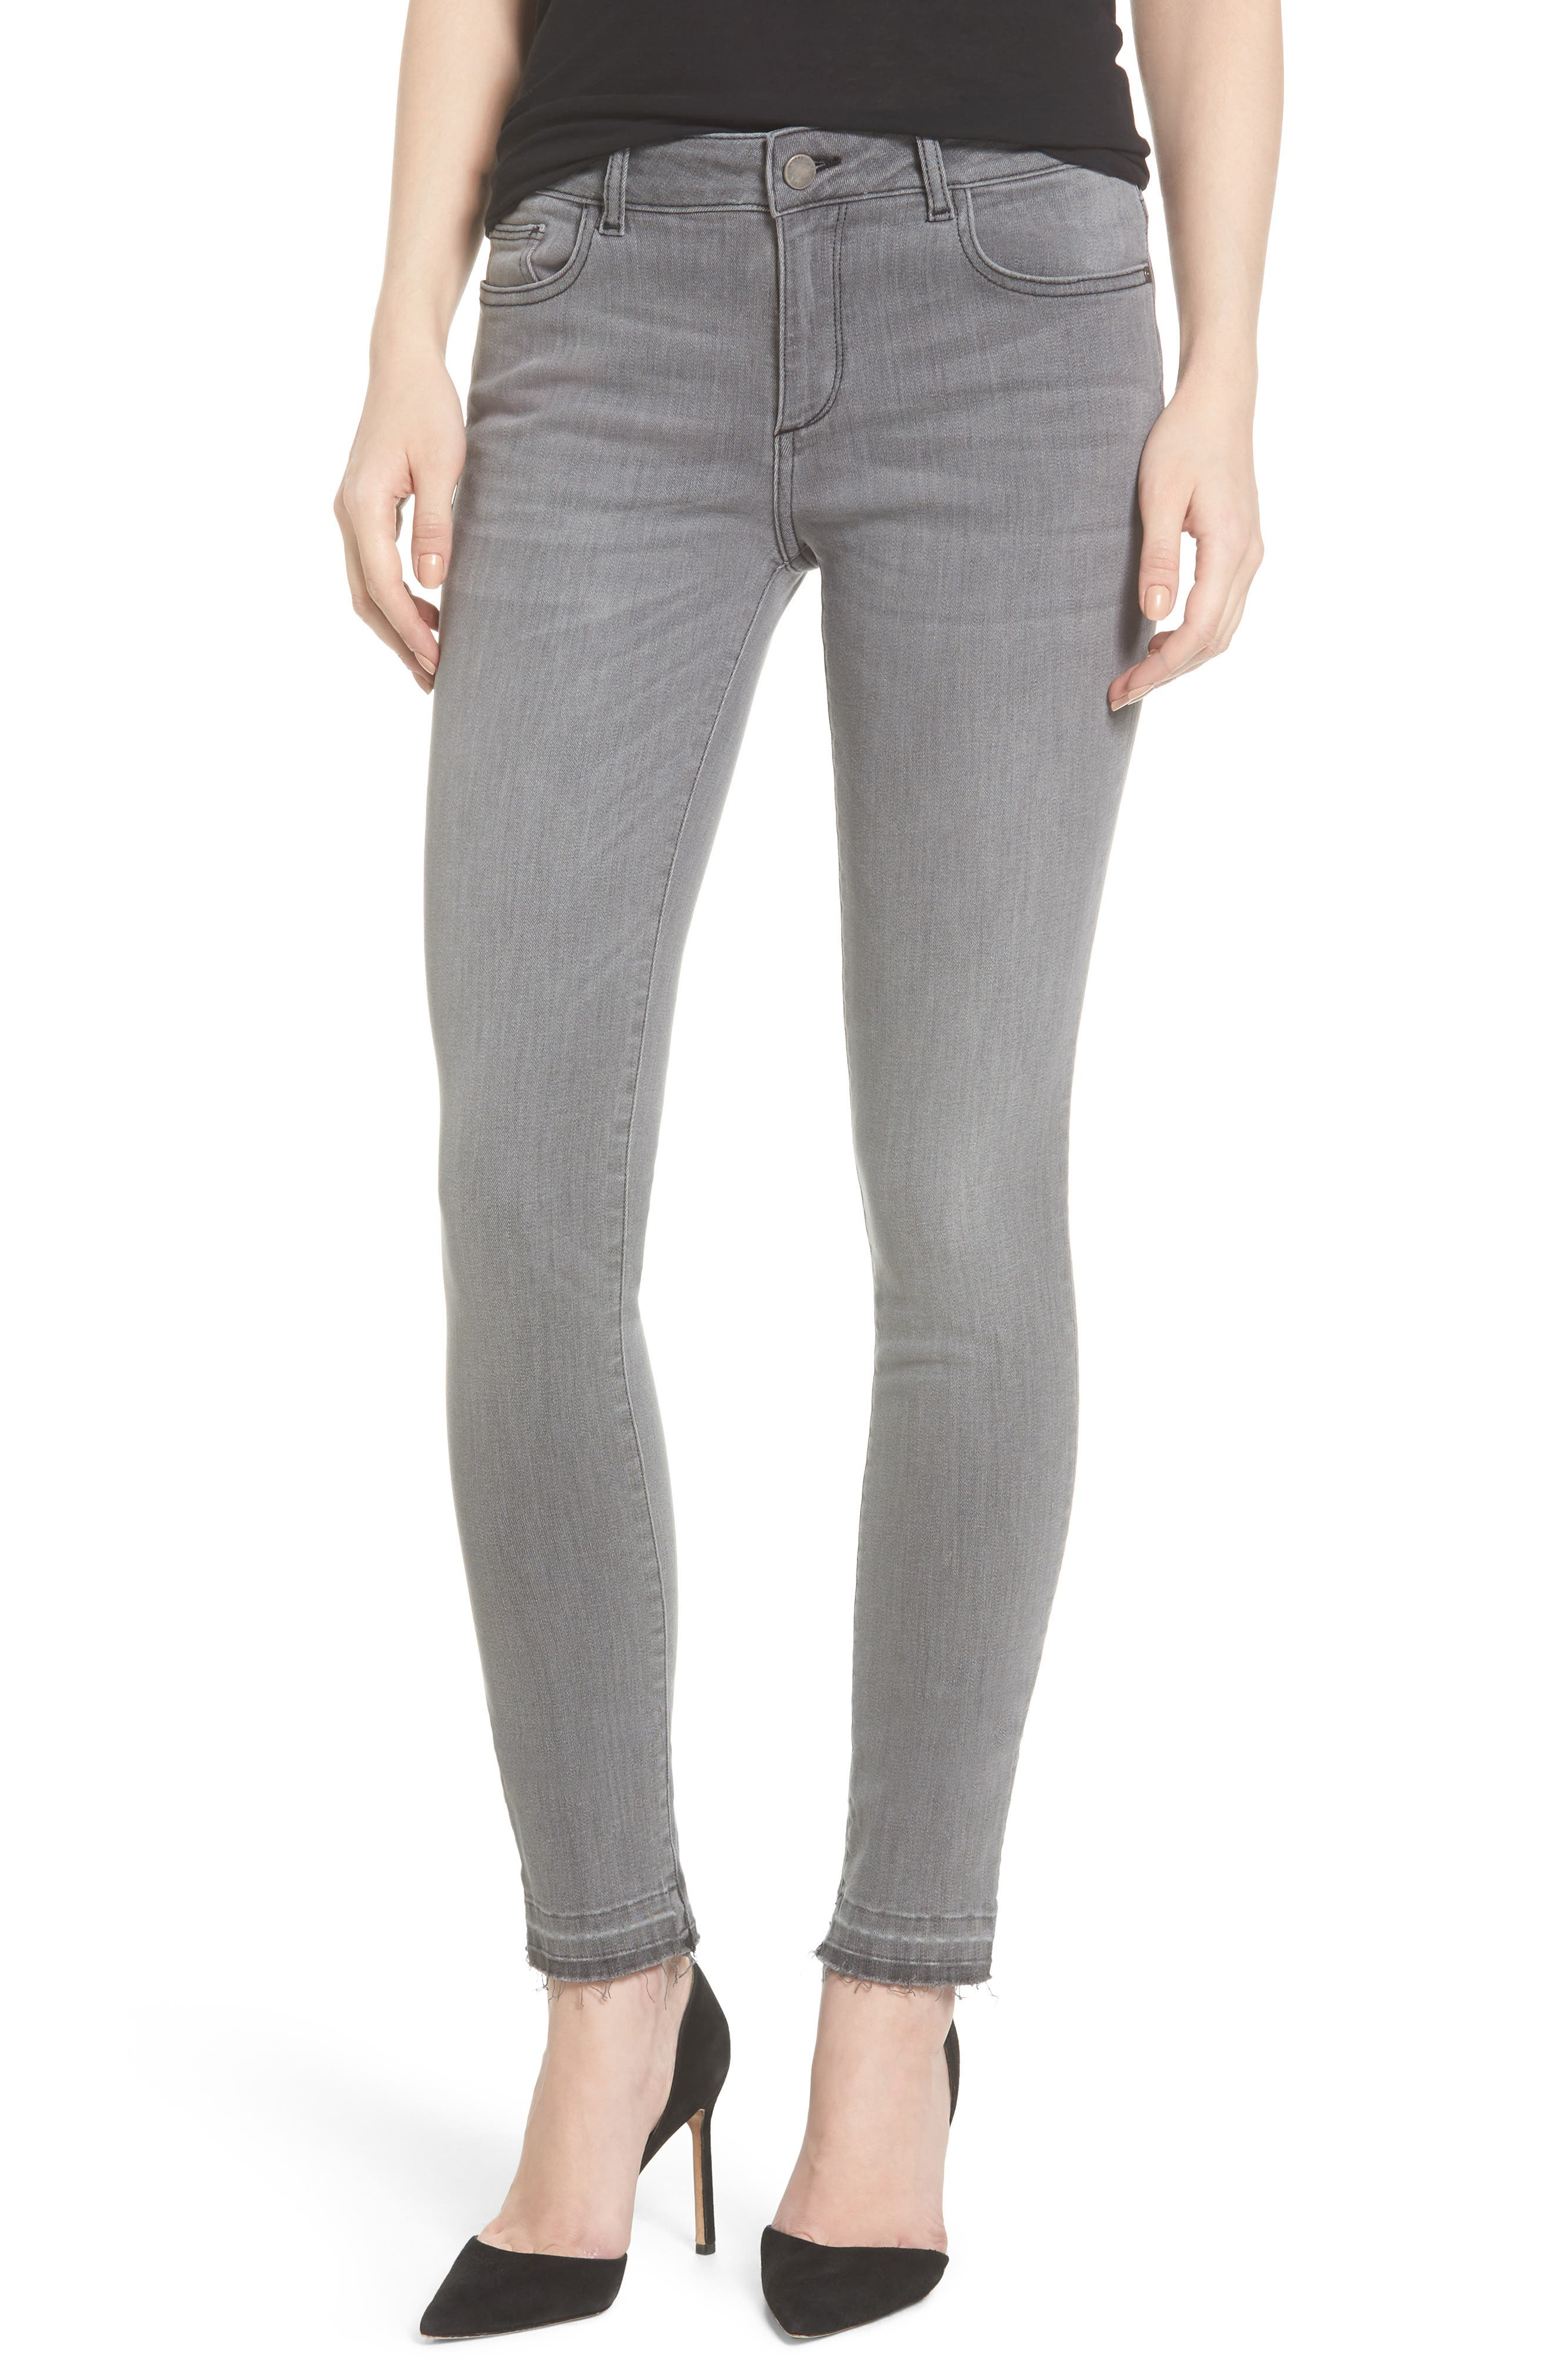 Alternate Image 1 Selected - DL1961 Florence Skinny Jeans (Chadwick)